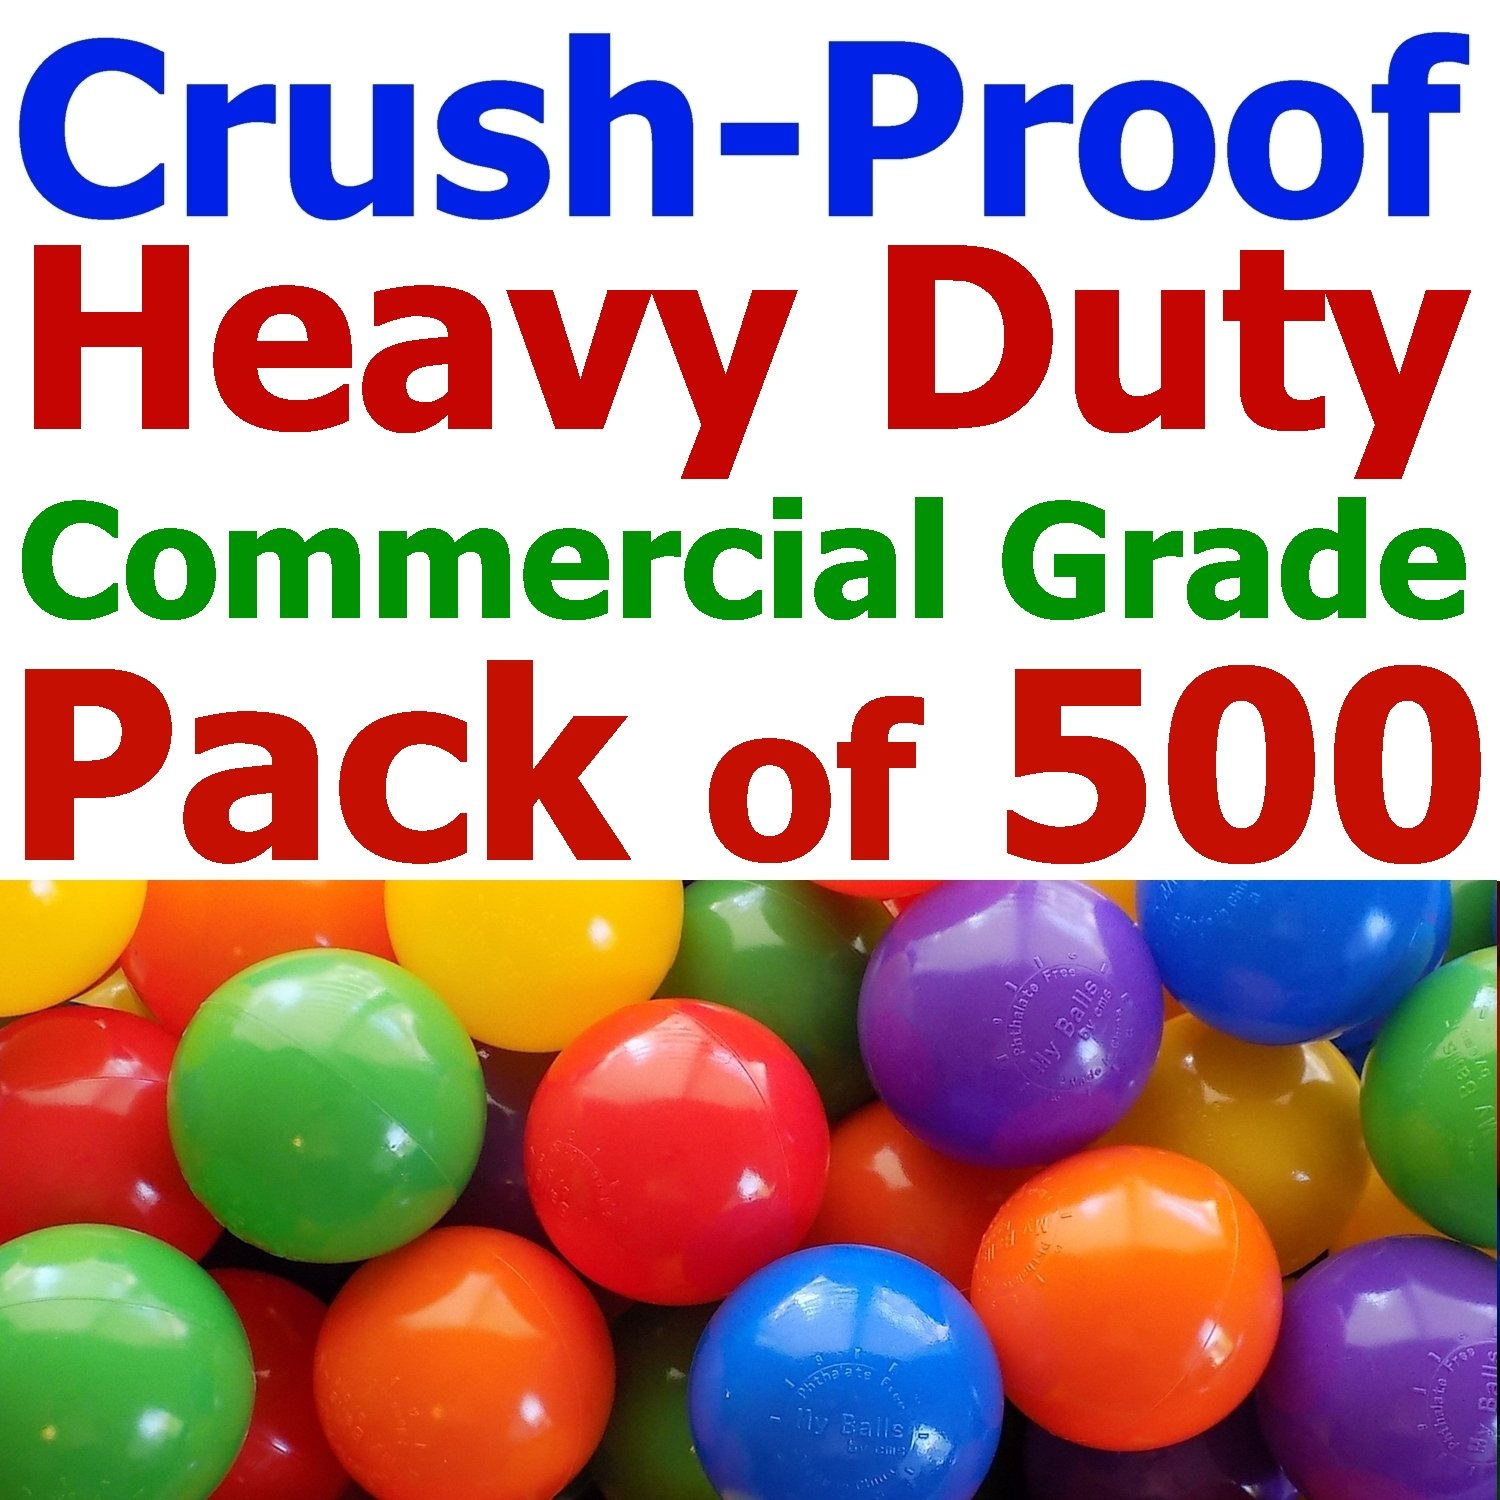 Pack of 500 Pcs Heavy Duty Commercial Grade Crush-proof Plastic Ball Pit Balls in 5 Colors - 3.1'' Air-filled 100% Non-pvc Phthalate Free Ldpe Plastic